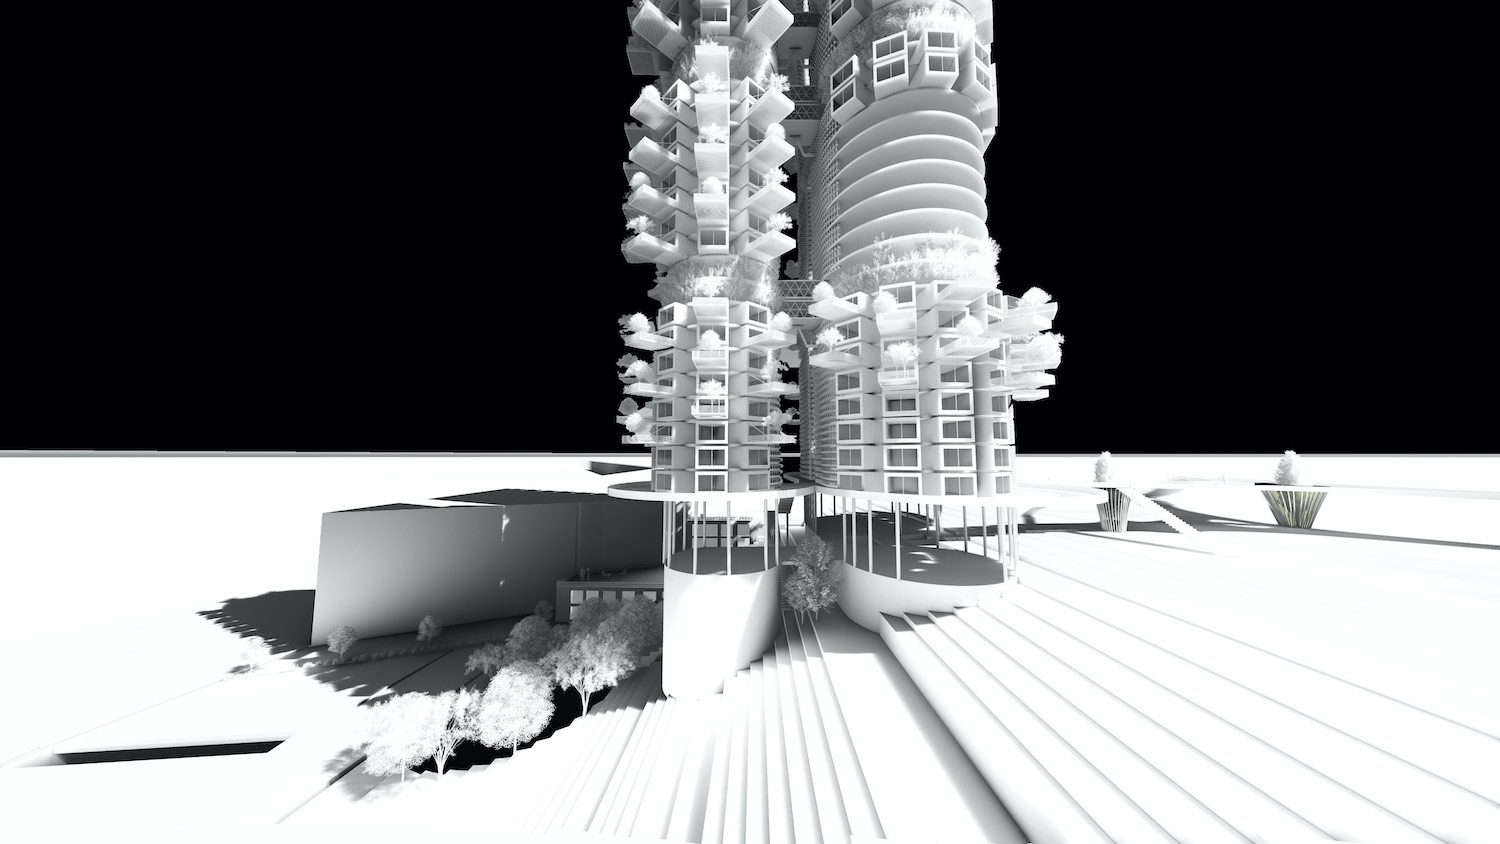 black and white rendering images of skyscraper